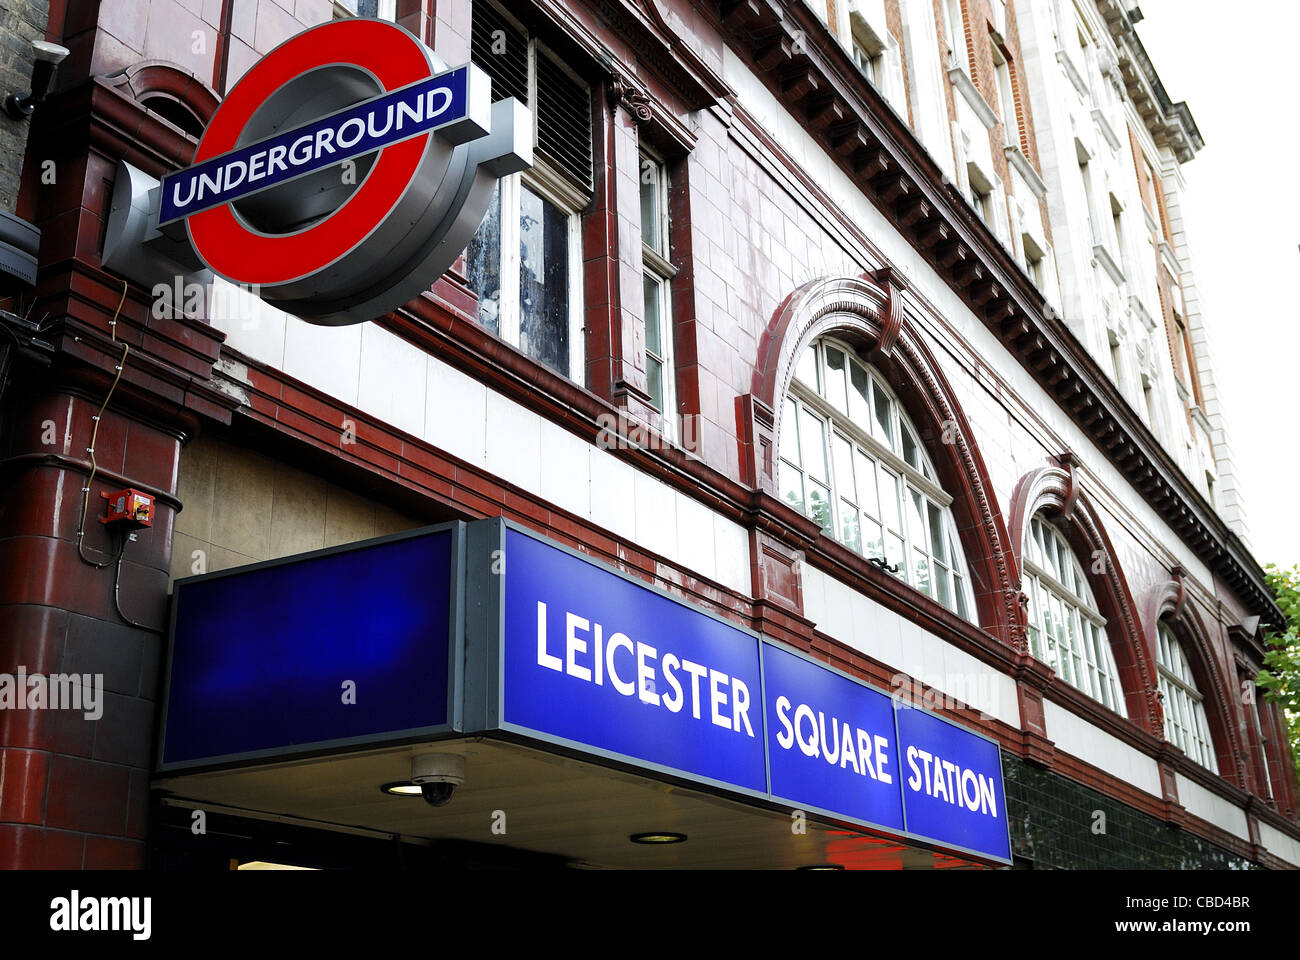 Entrance of London's Leicester Square Underground station - Stock Image